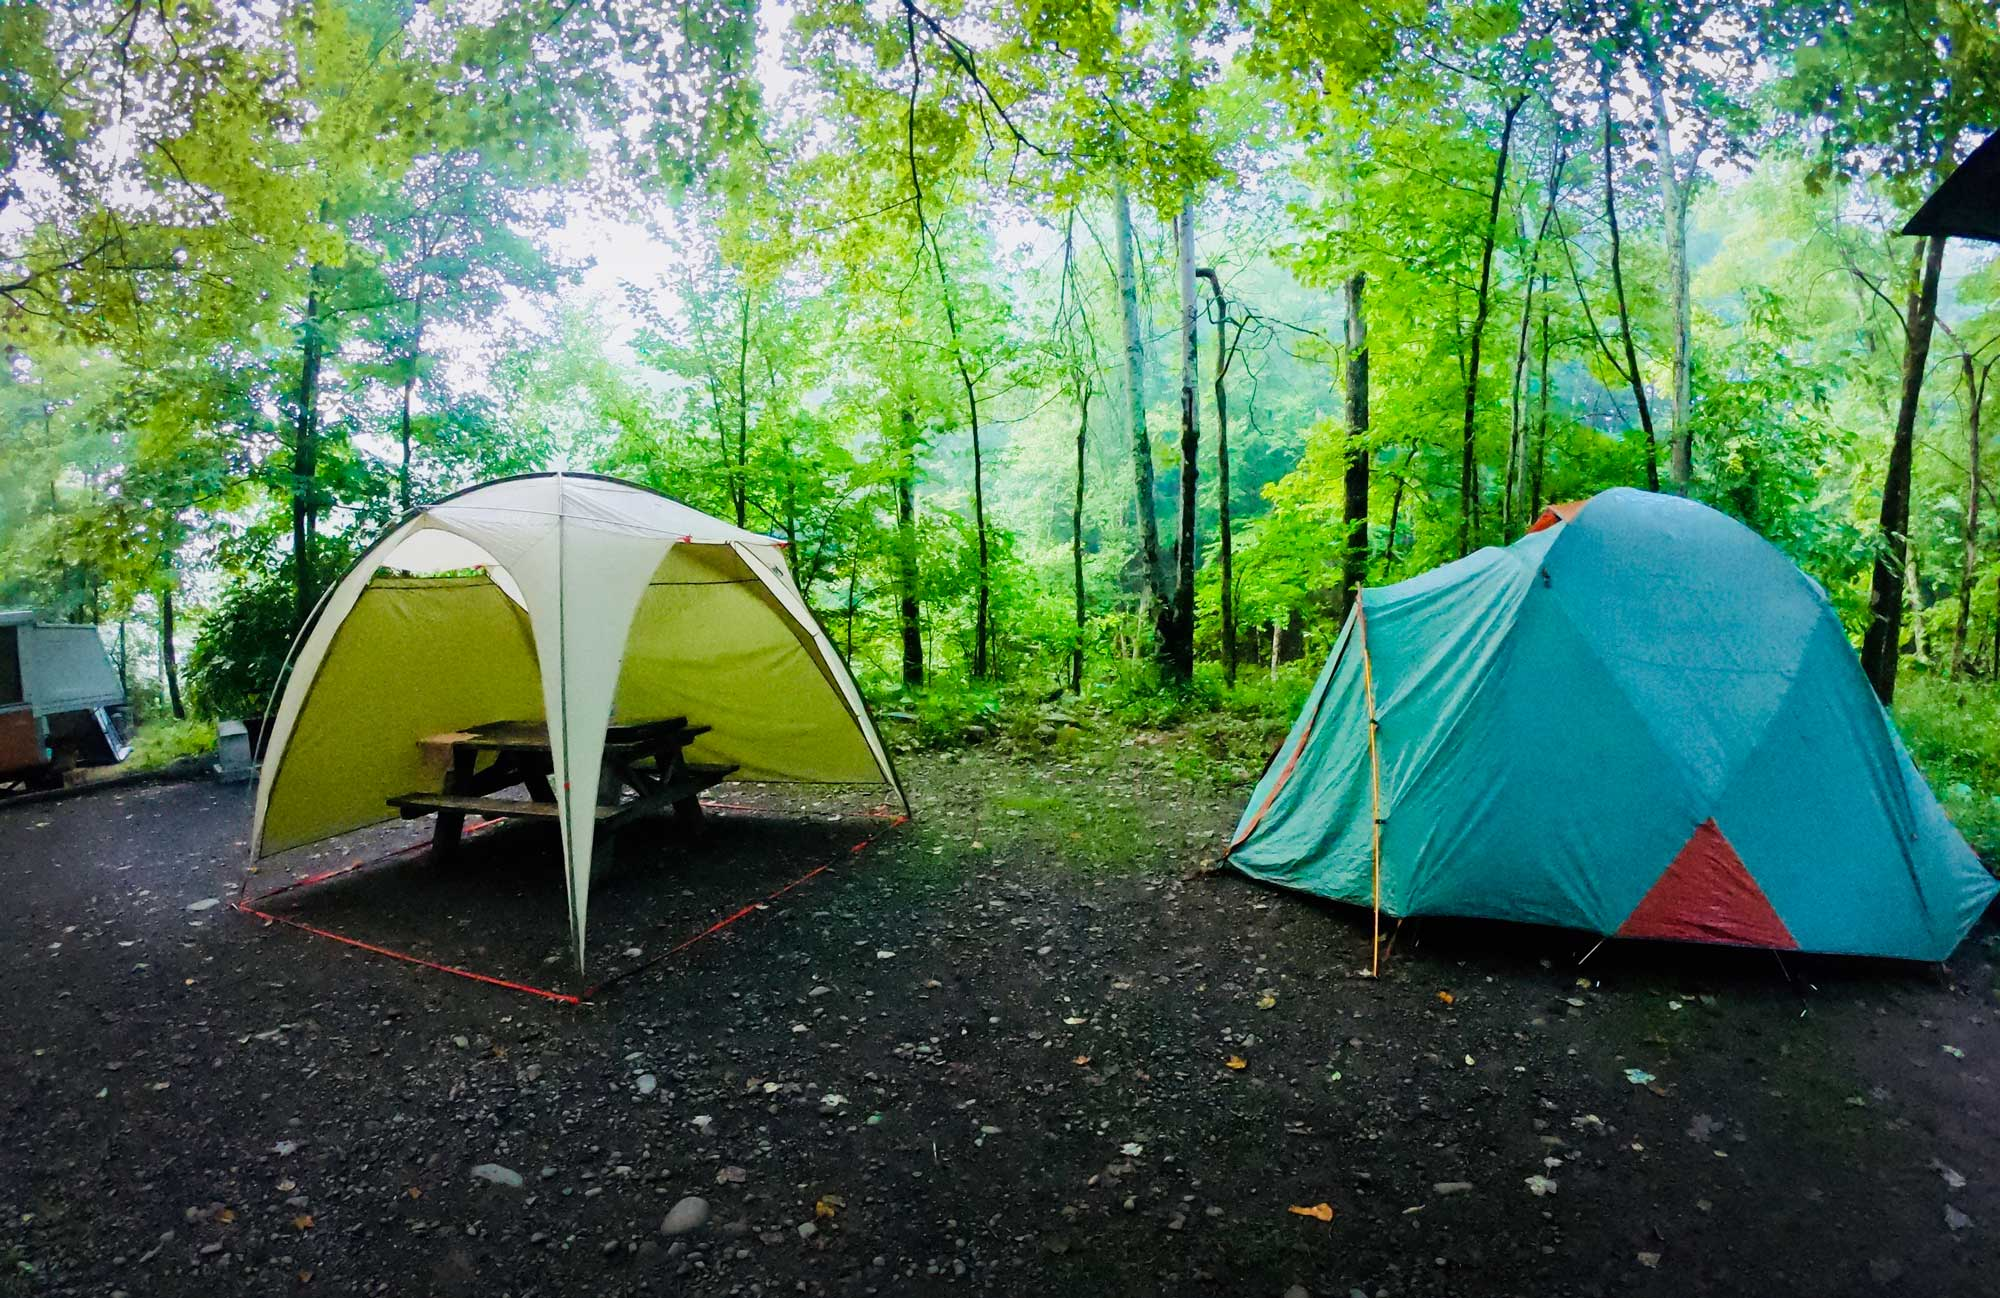 Campsite with tent in Catkskills at the Woodland Valley Campground, New York